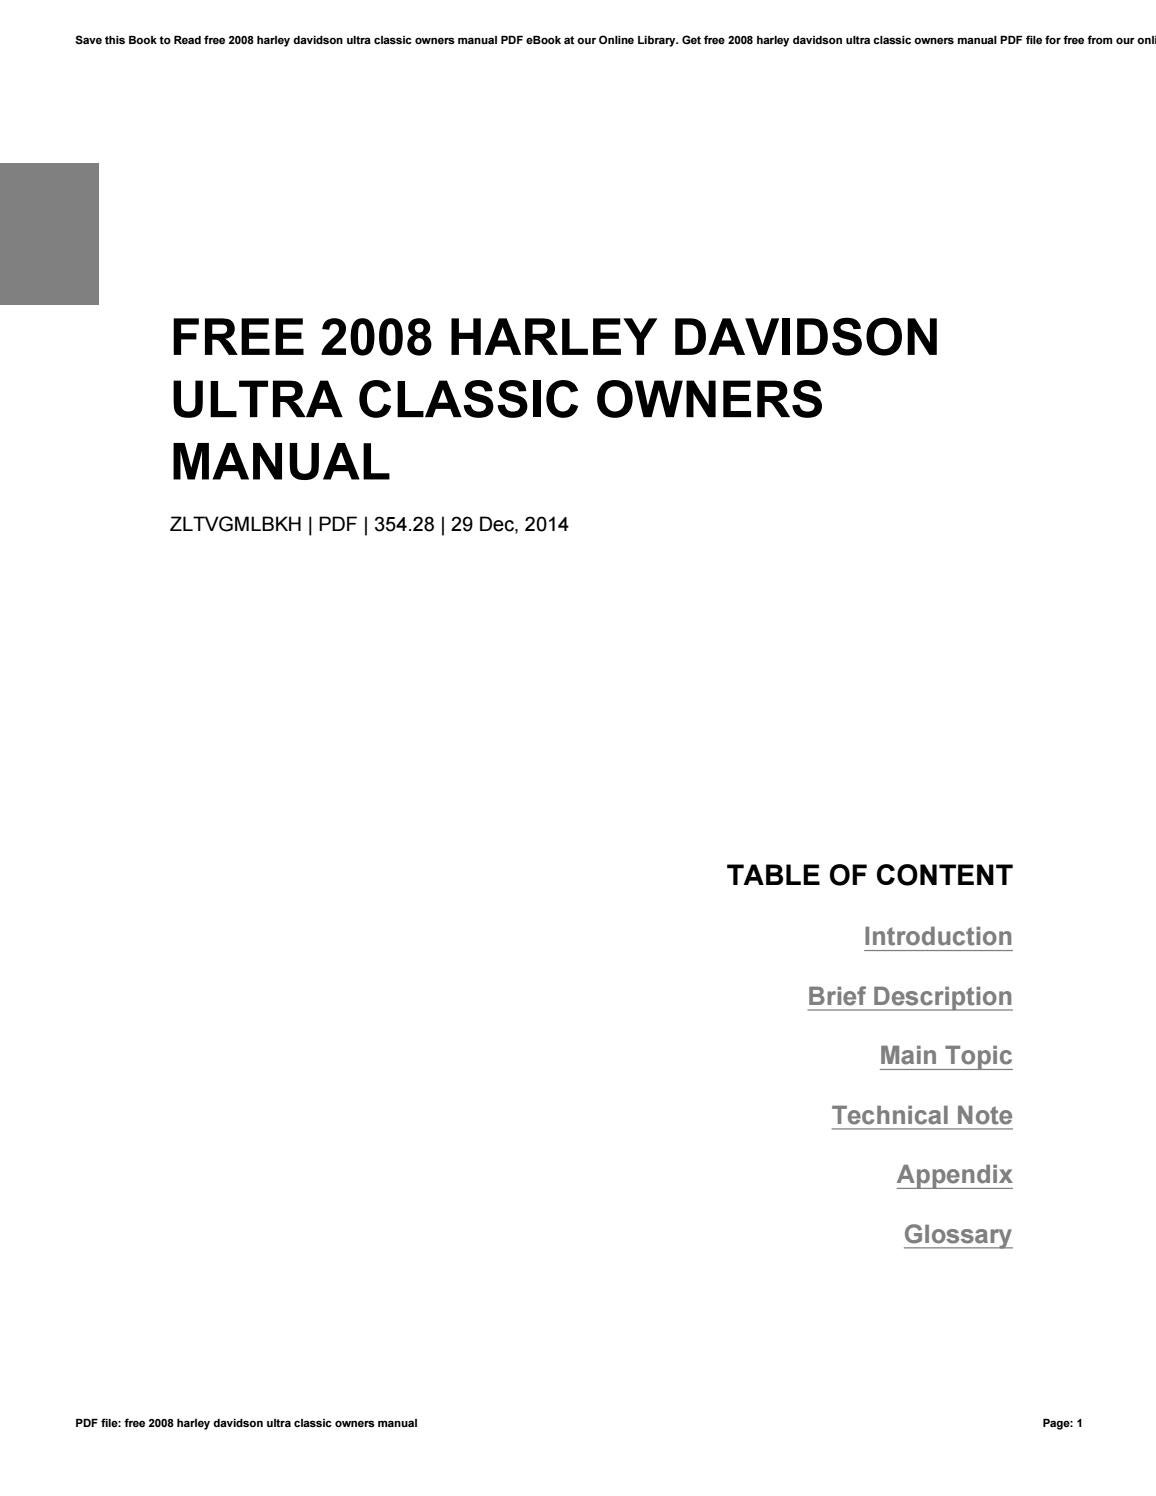 Free 2008 harley davidson ultra classic owners manual by Leroy Perry - issuu